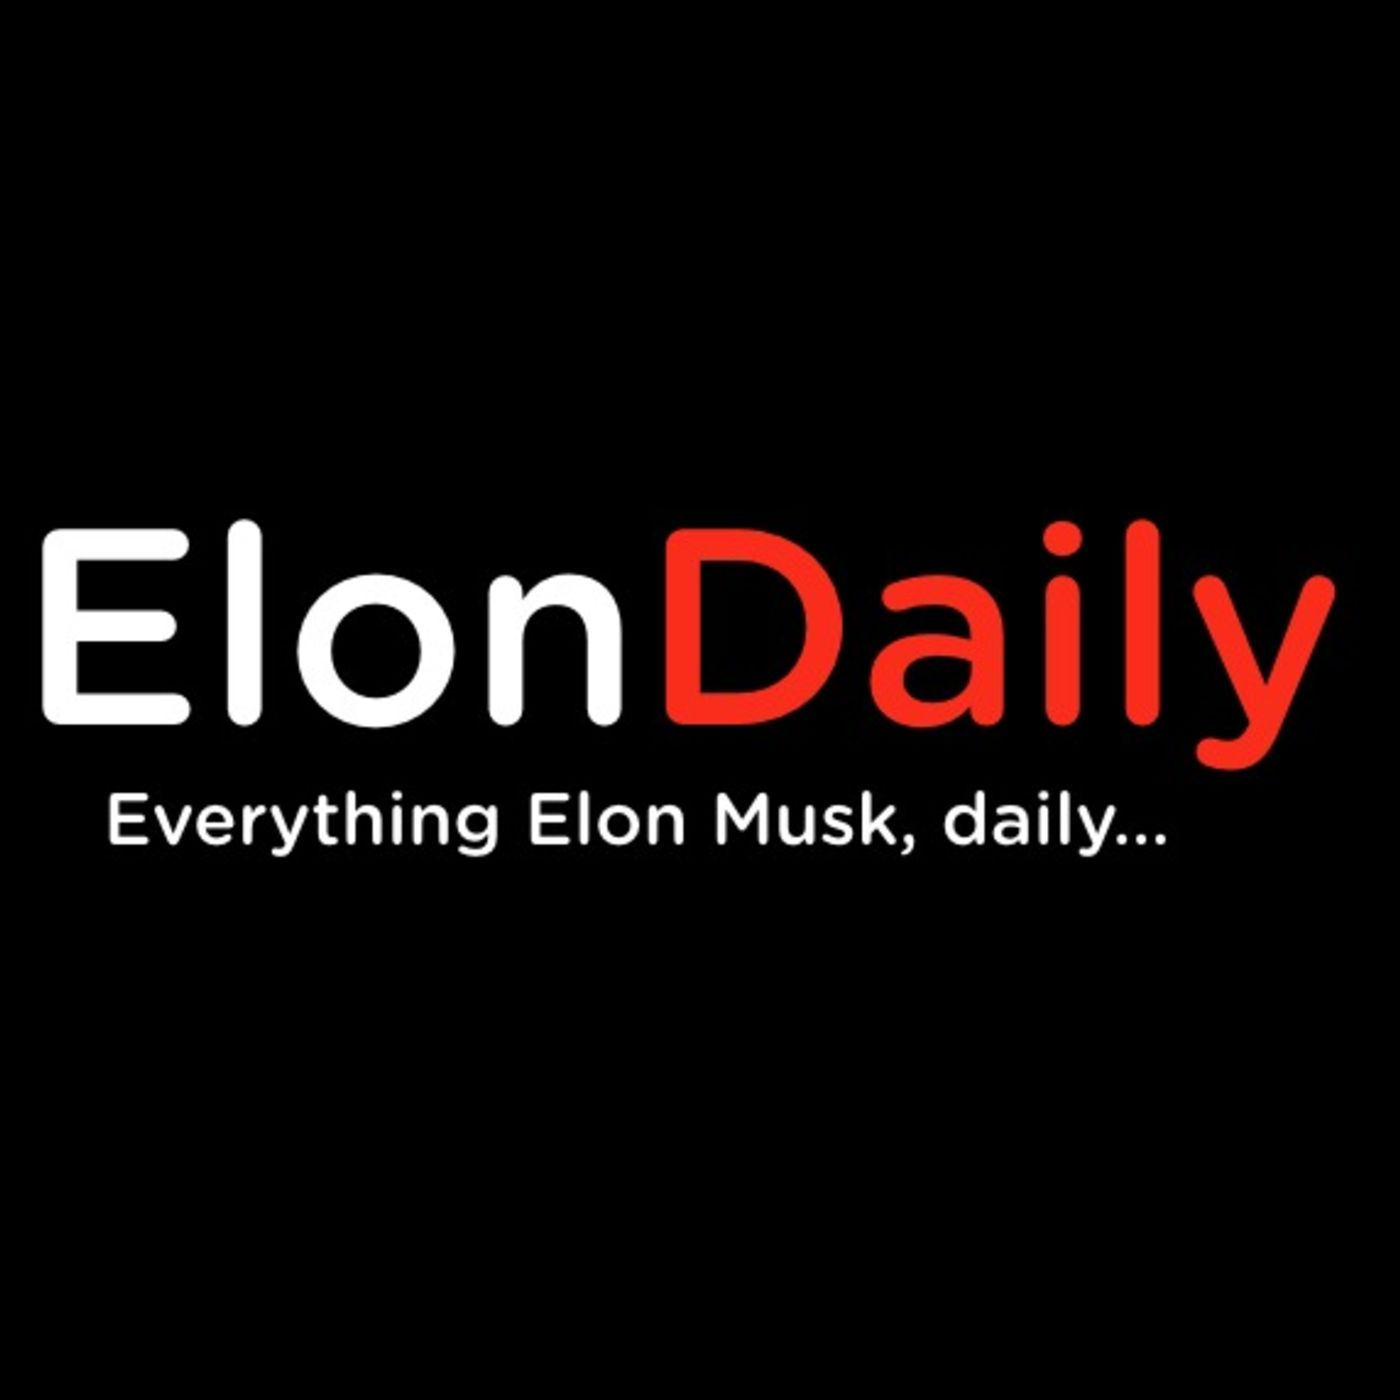 Elon Daily Podcast - Listen, Reviews, Charts - Chartable